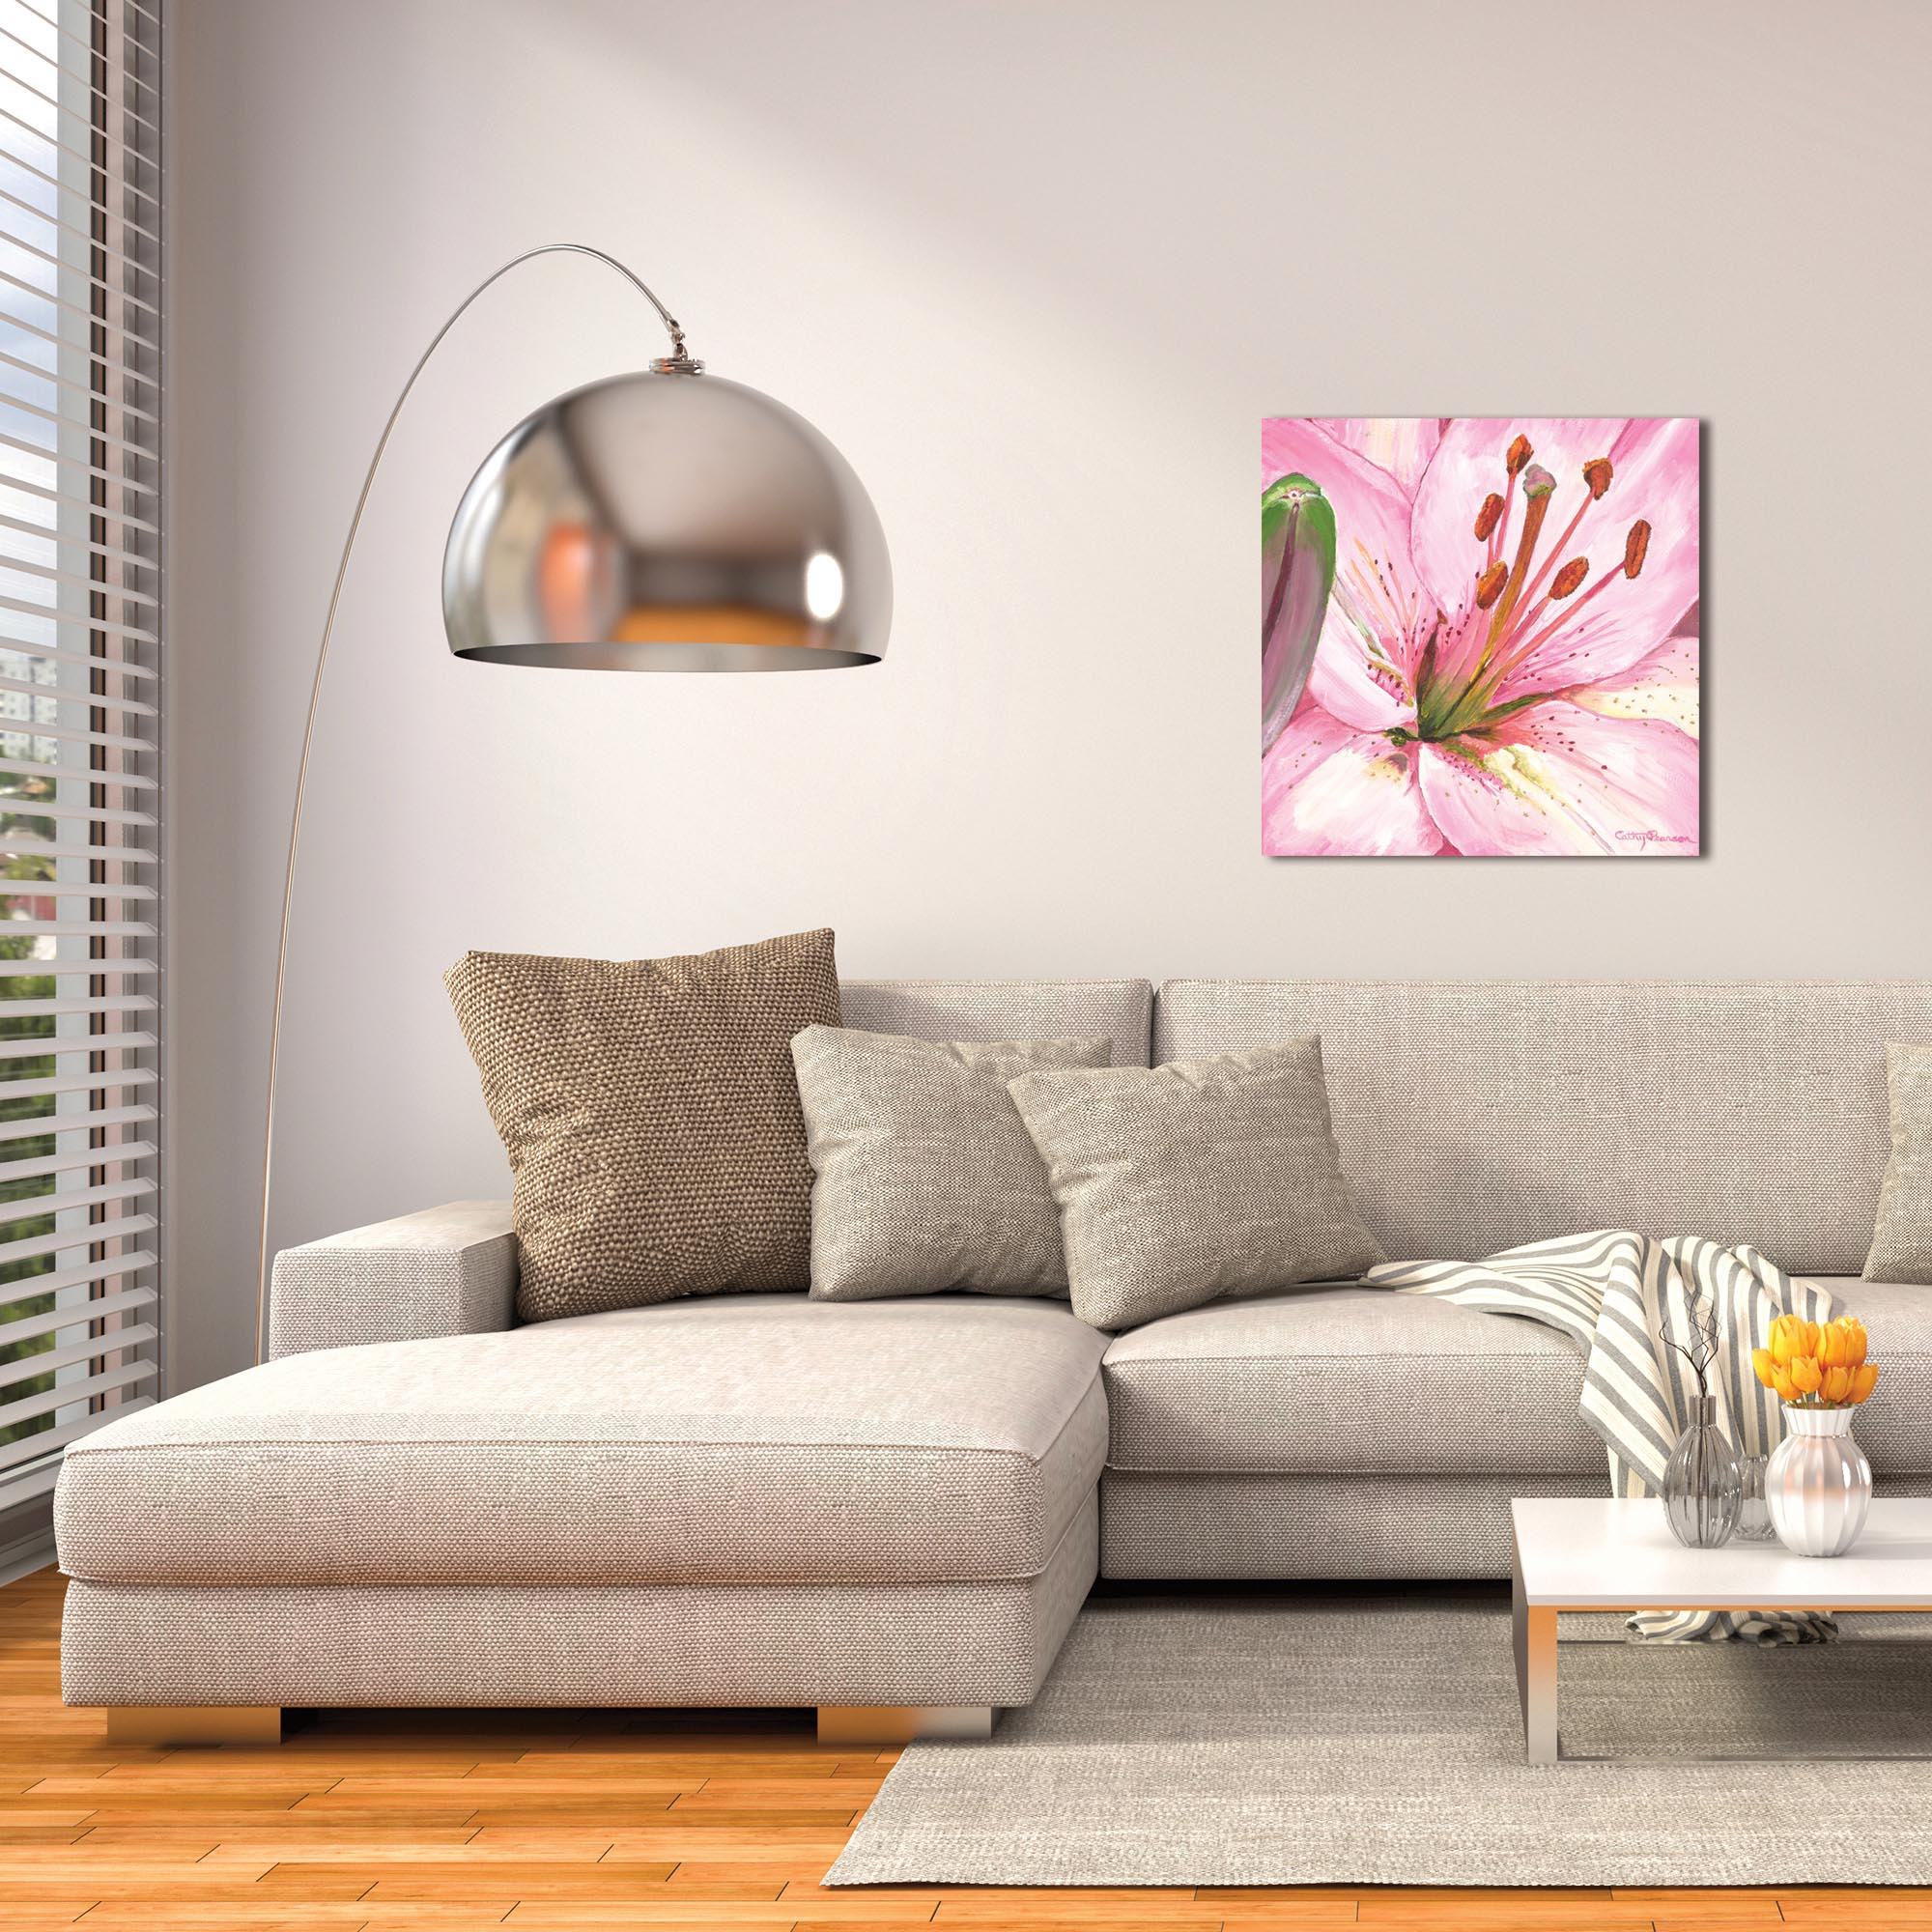 Traditional Wall Art 'Heart of a Pink Lily' - Floral Decor on Metal or Plexiglass - Lifestyle View